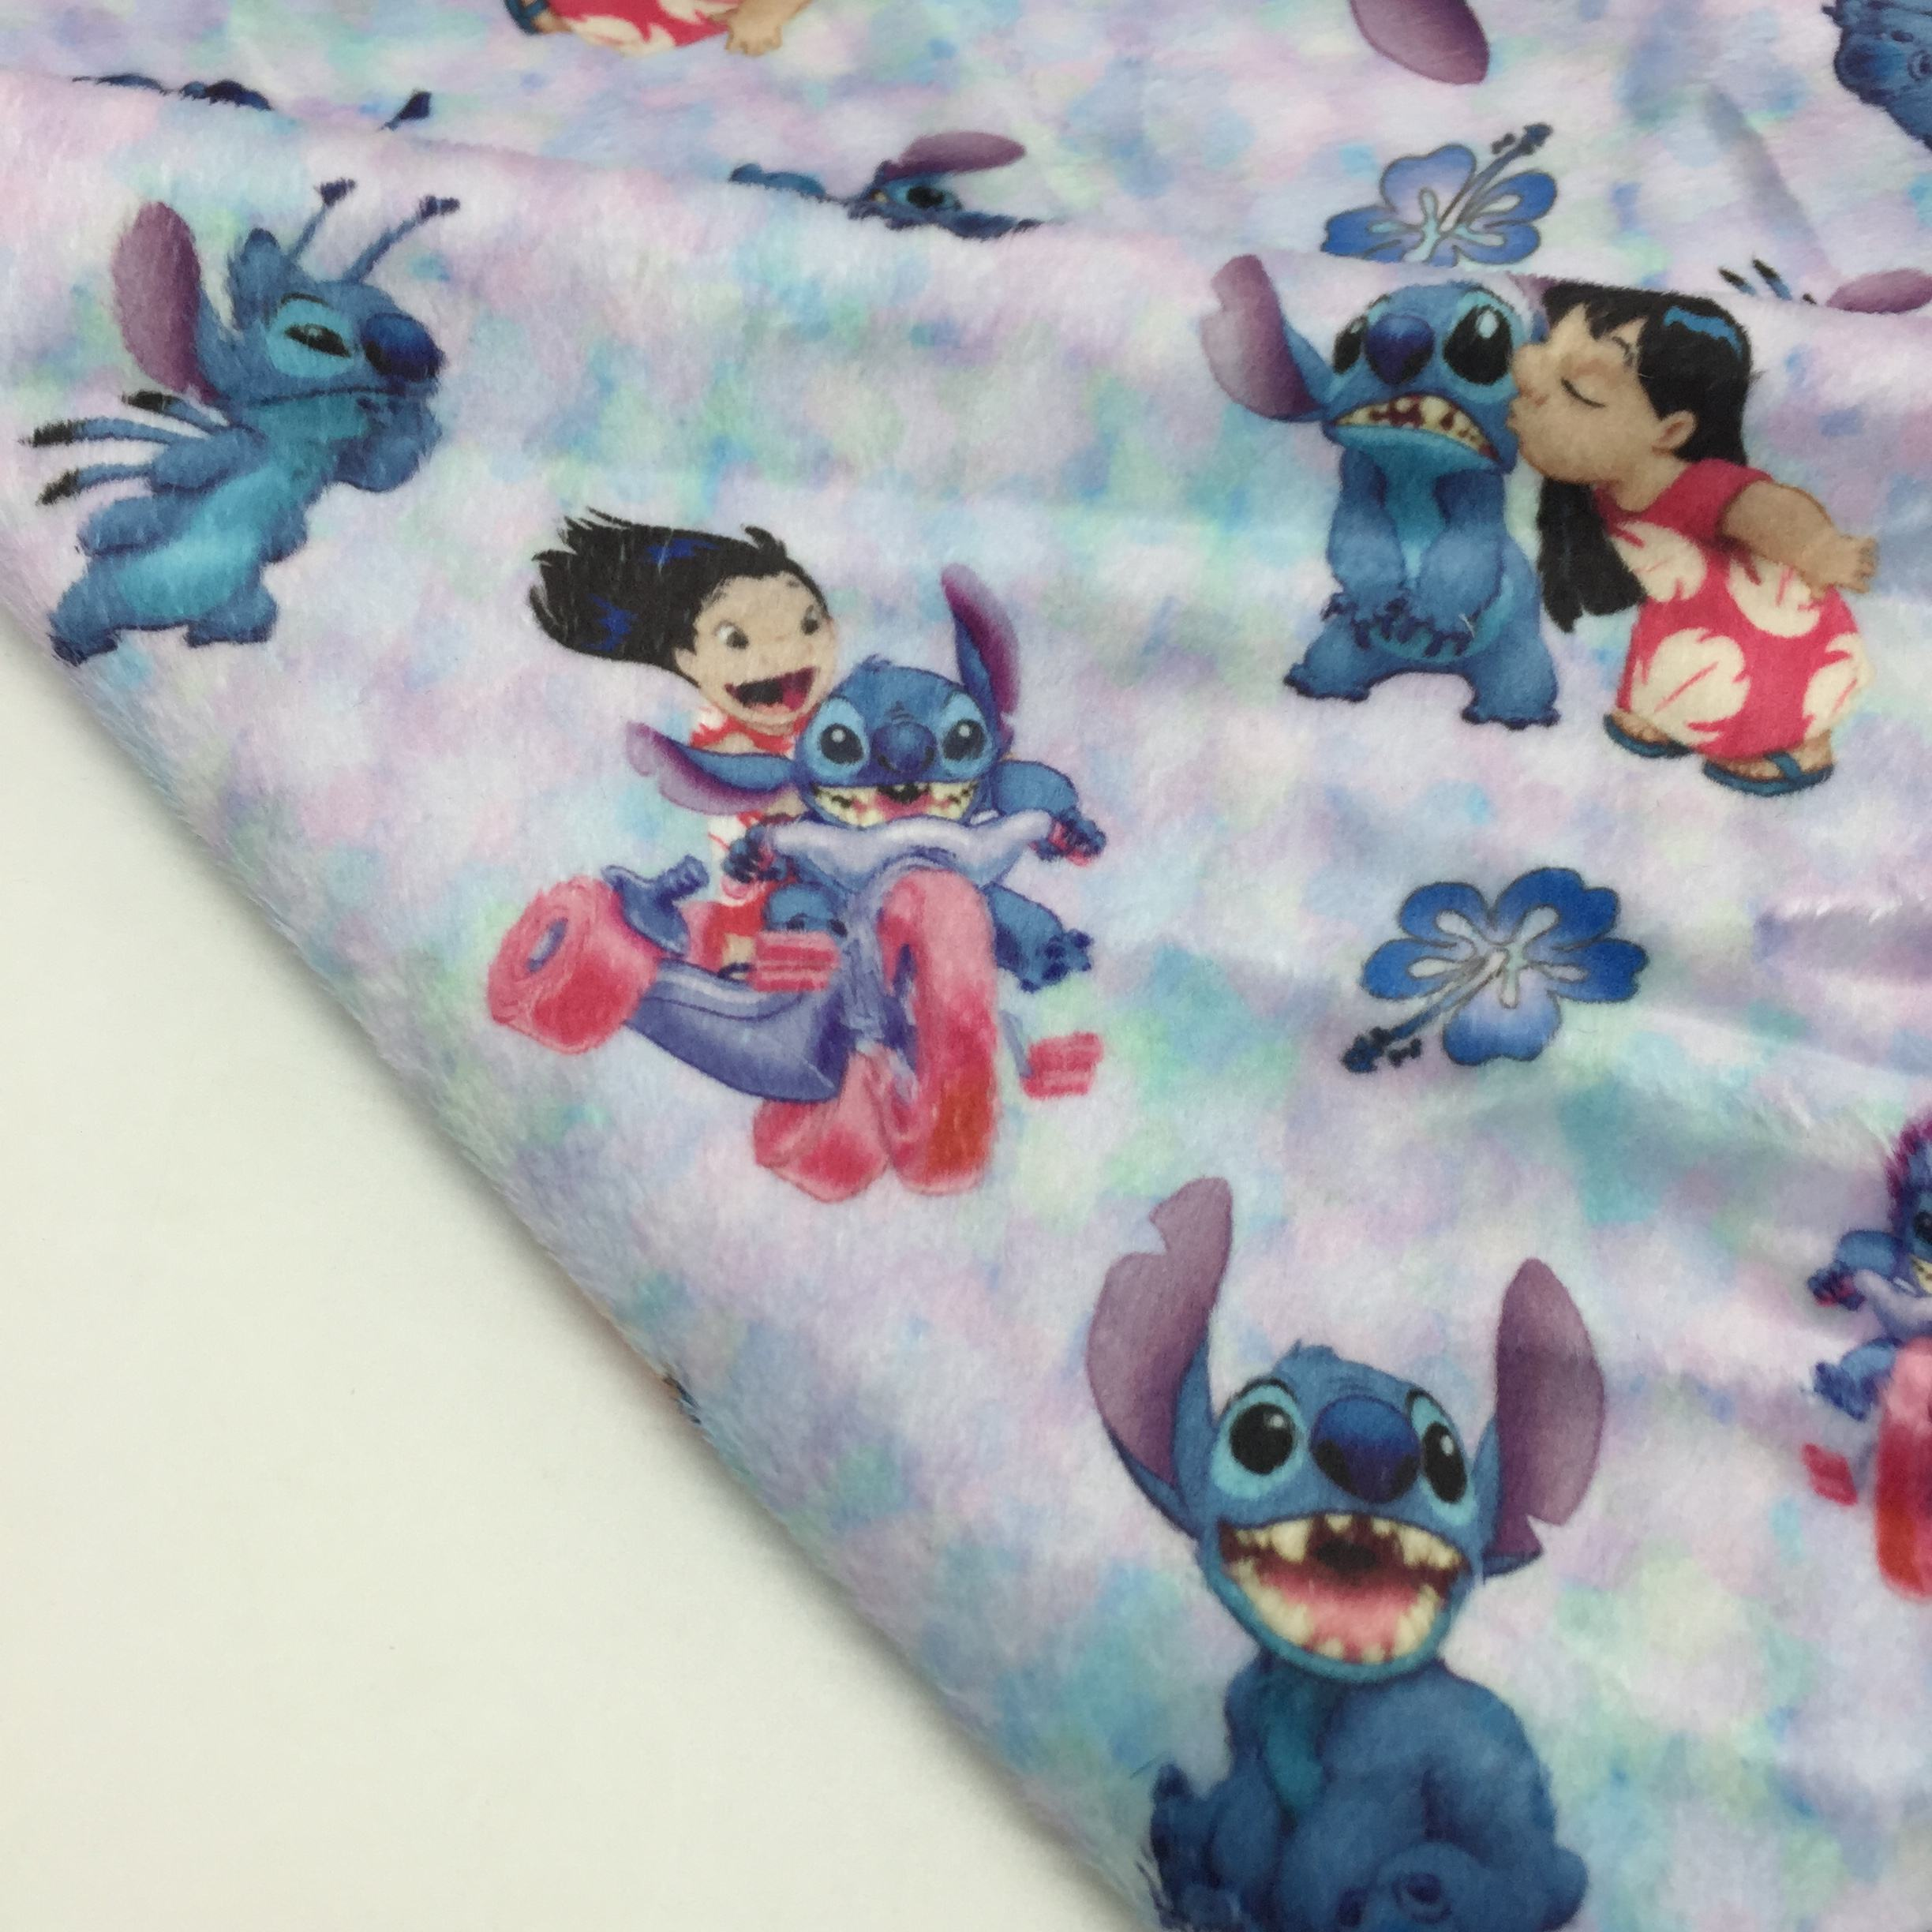 Chinese supplier digital printed 100% polyester plush minky fabric, custom printed, no MOQ